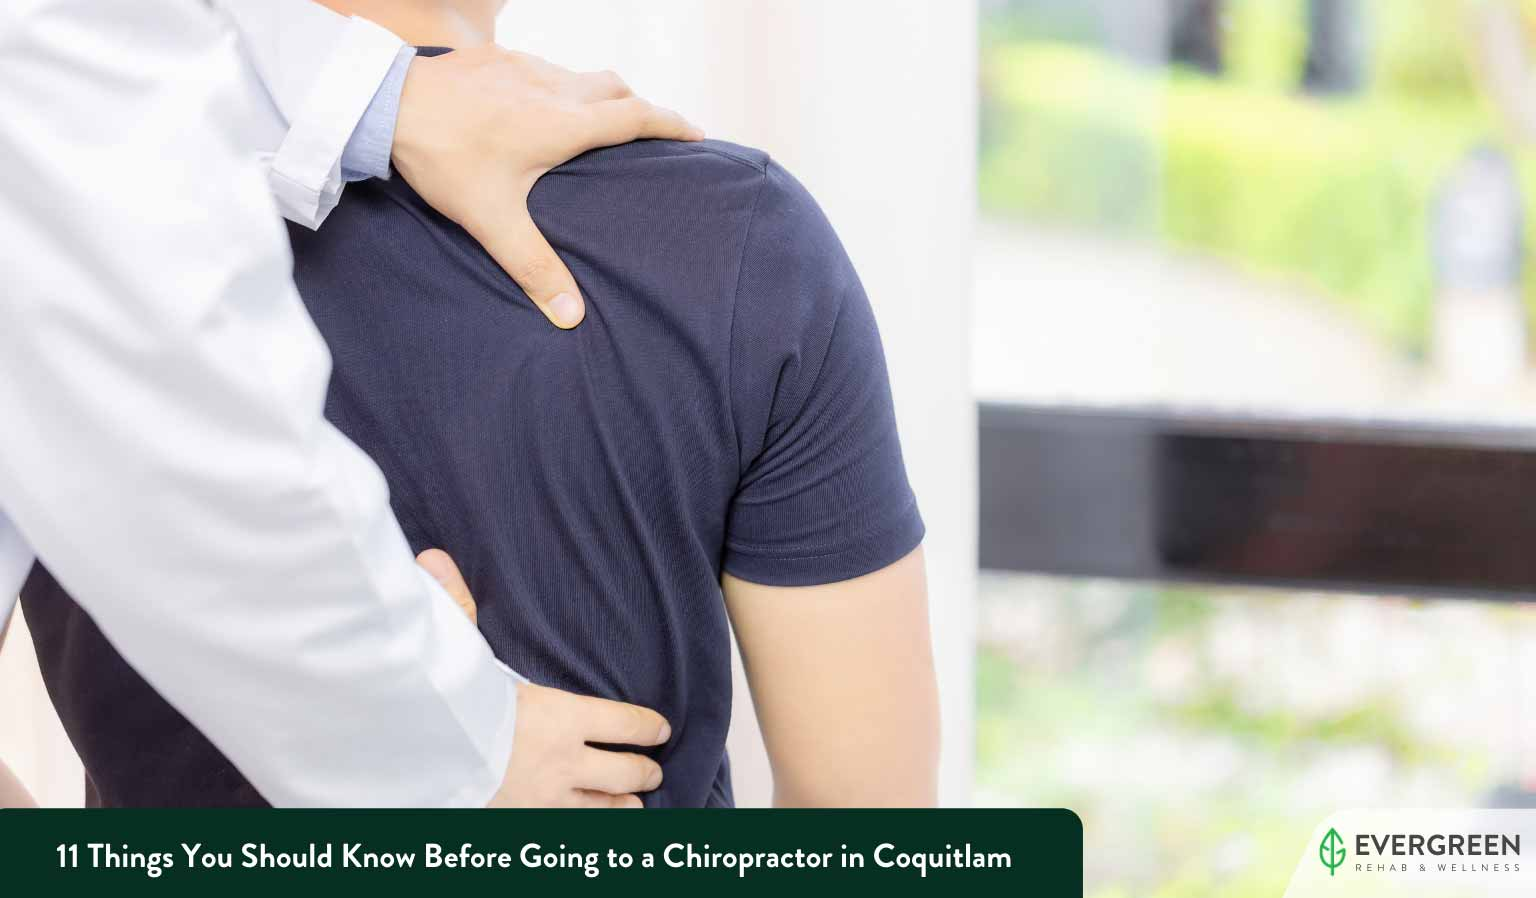 11 Things You Should Know Before Going to a Chiropractor in Coquitlam